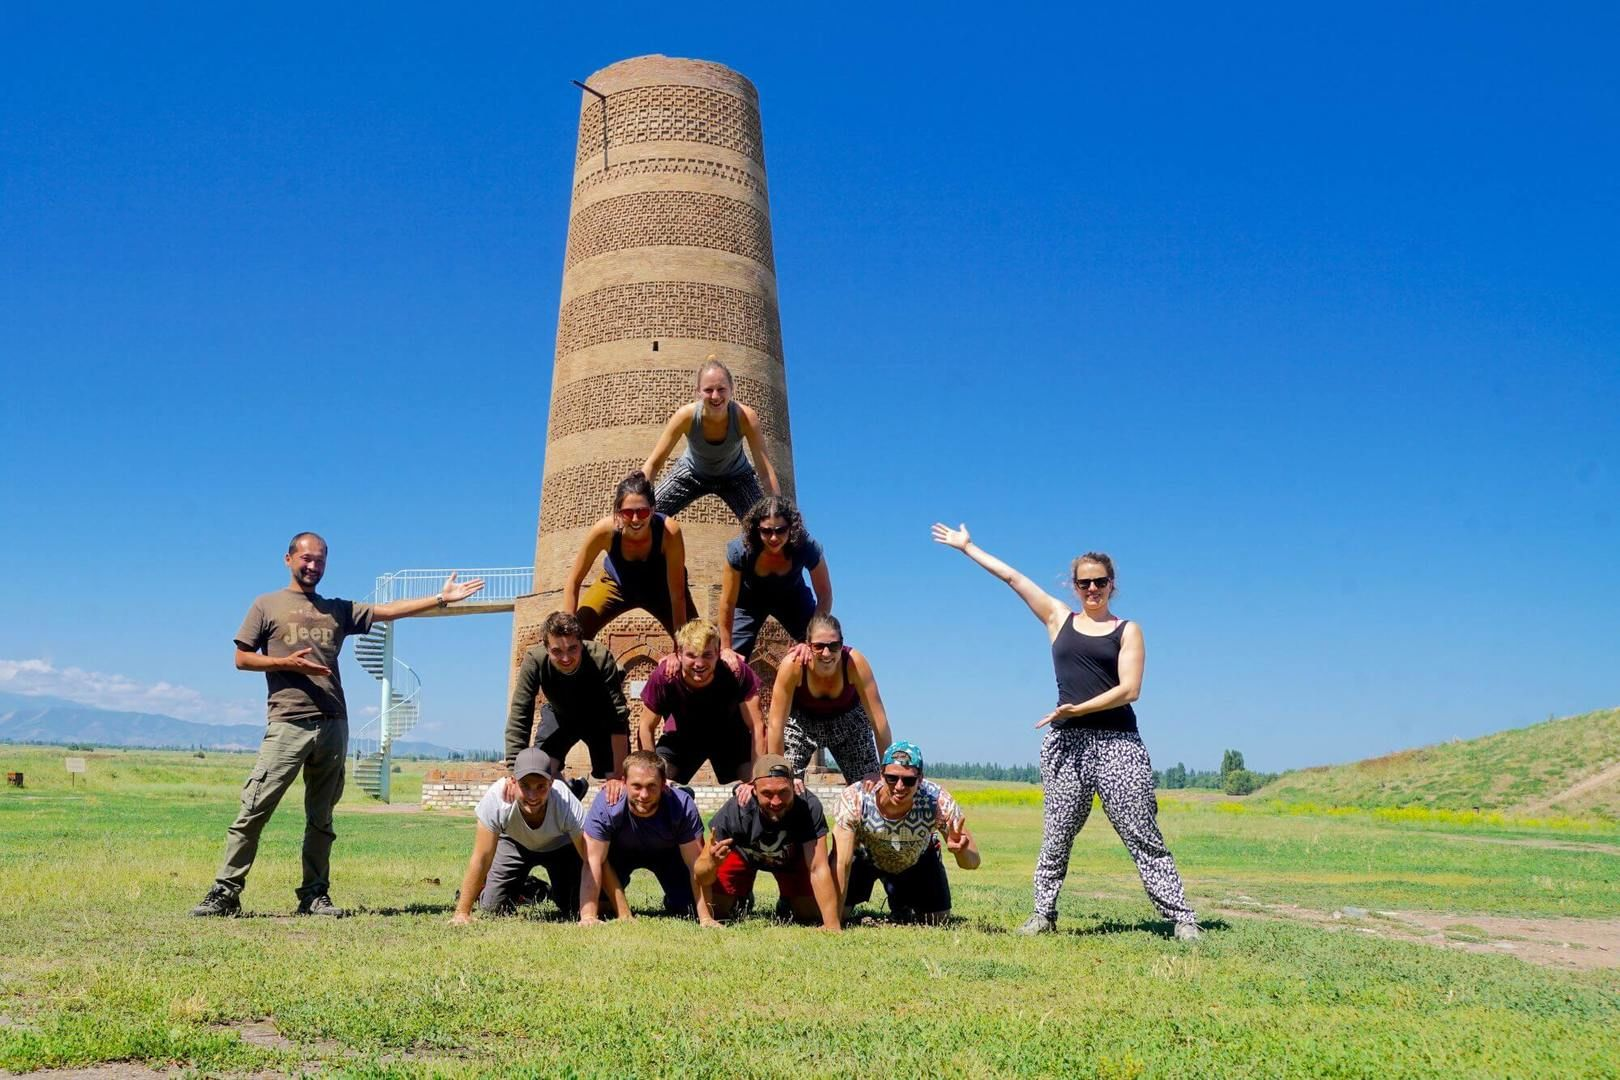 Group of travelers building human pyramid in front of Burana Tower in Kyrgyzstan Tours